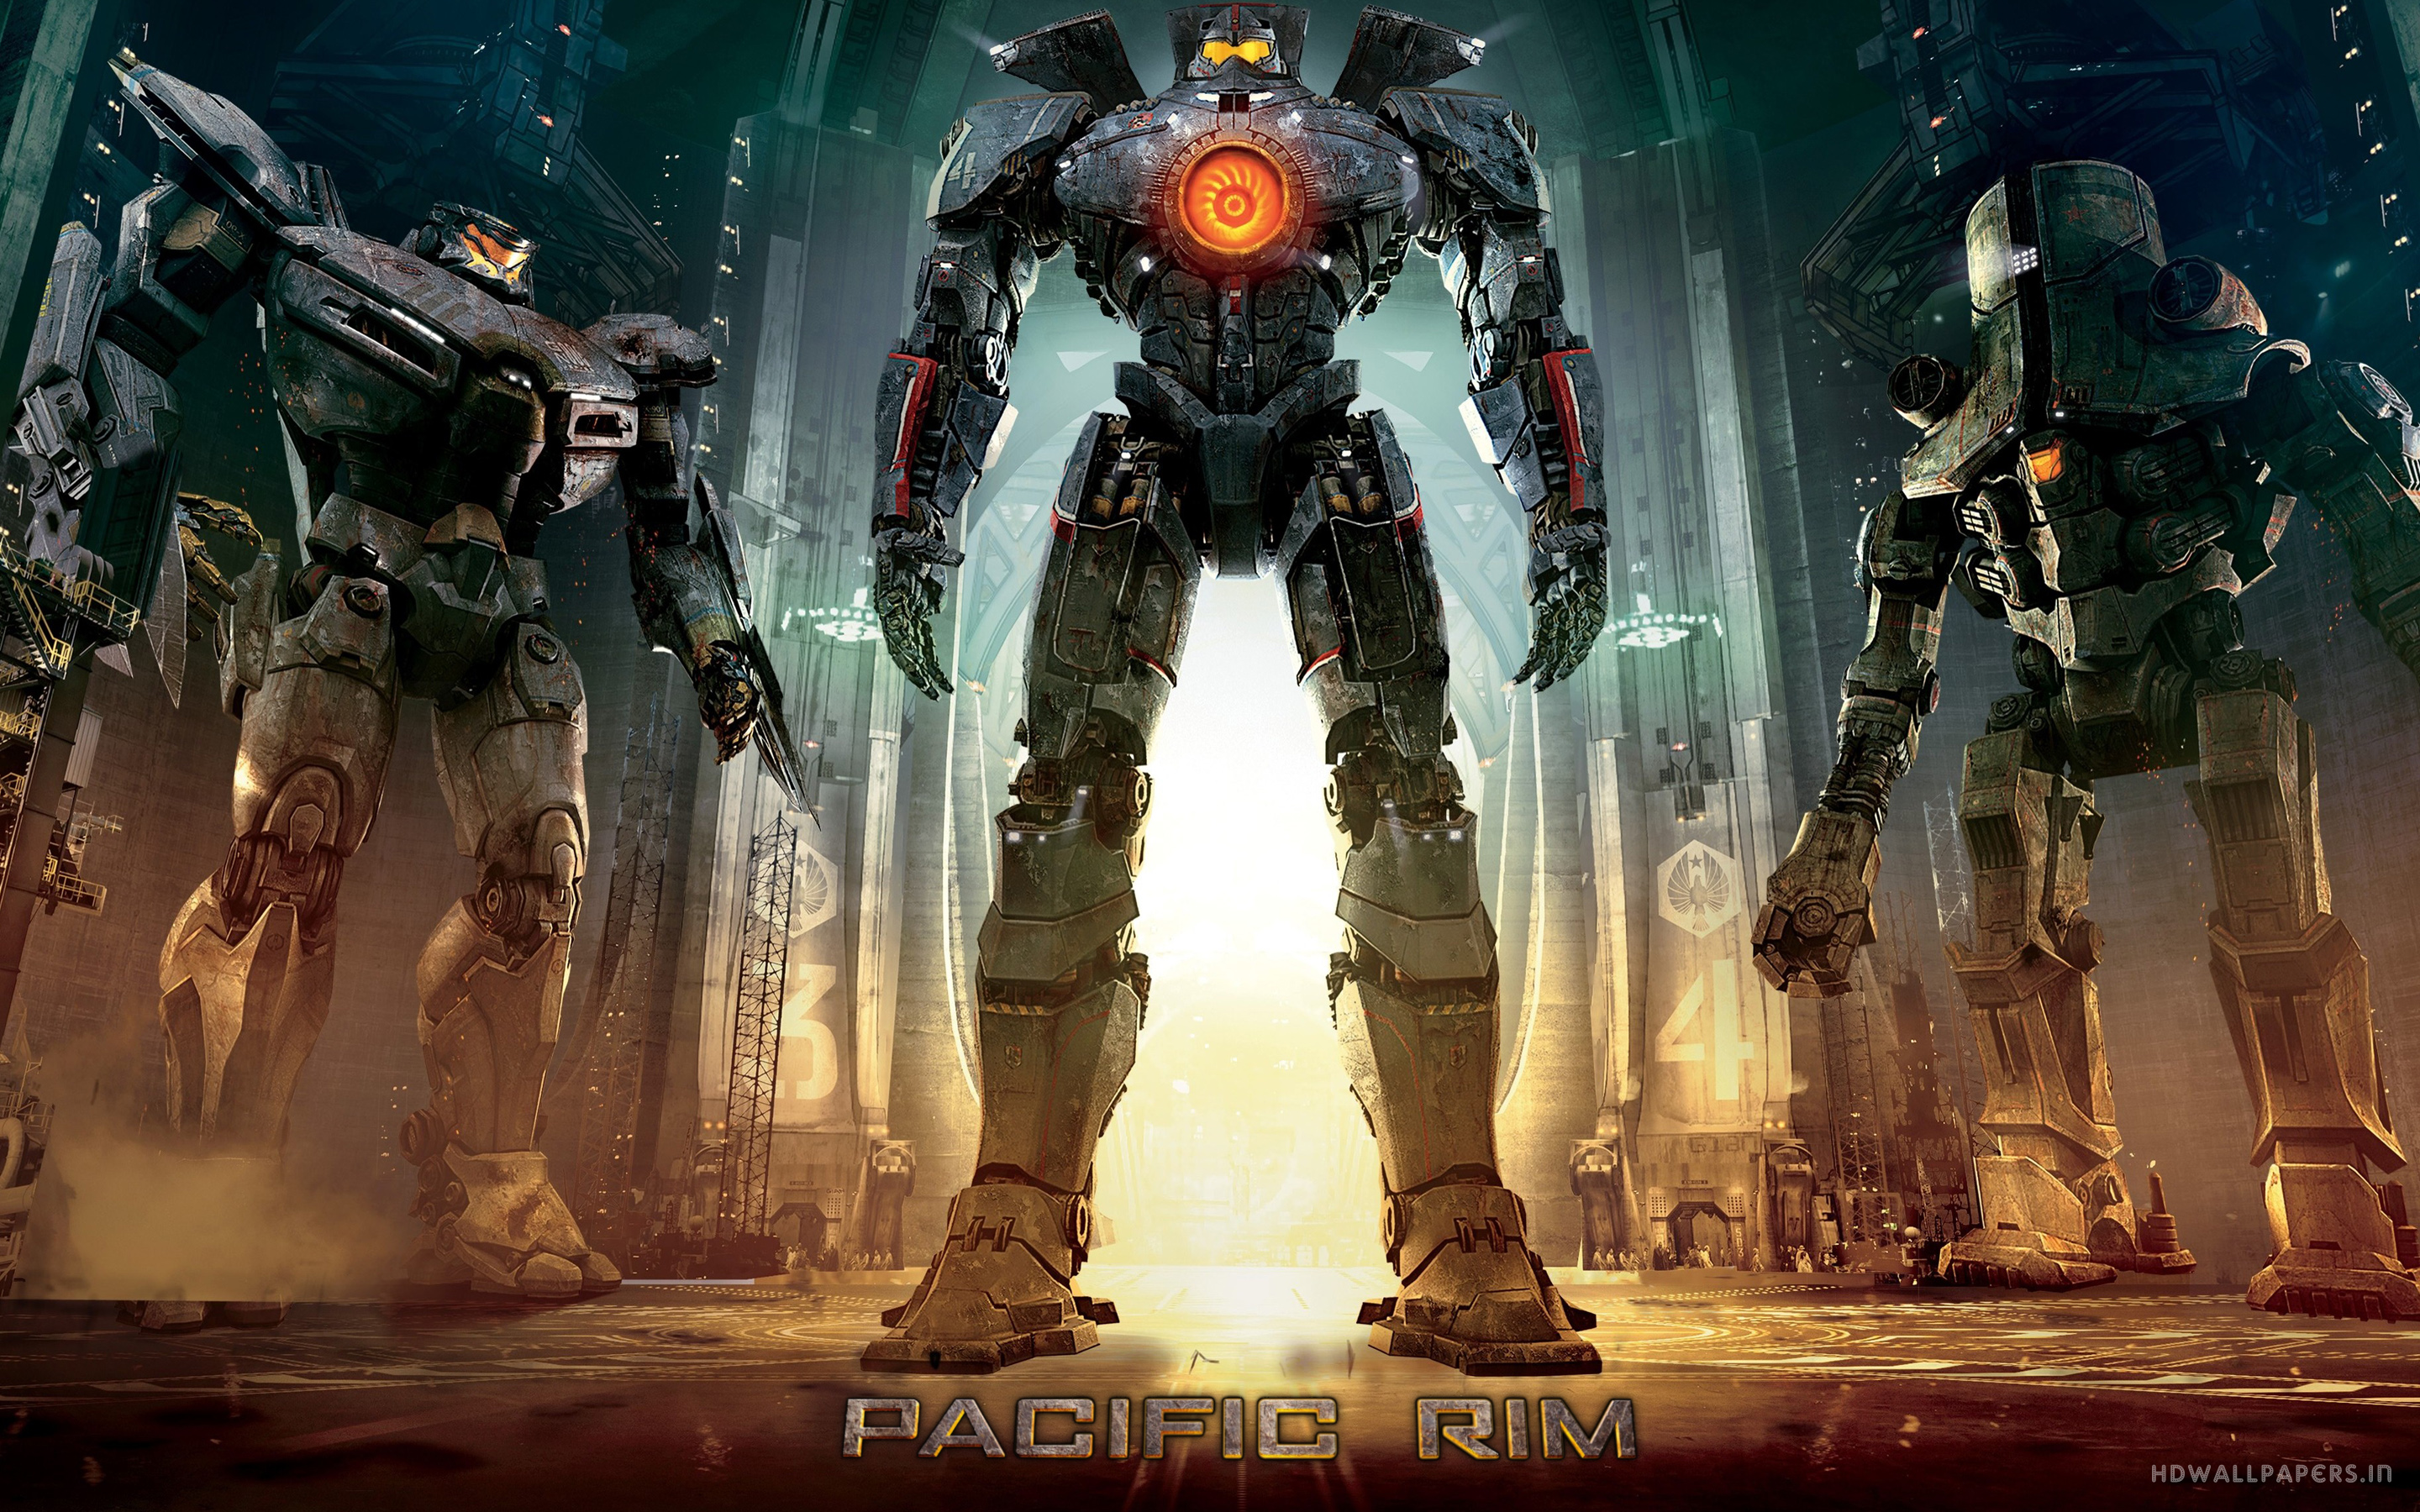 Pacific Rim Theme Song | Movie Theme Songs & TV Soundtracks